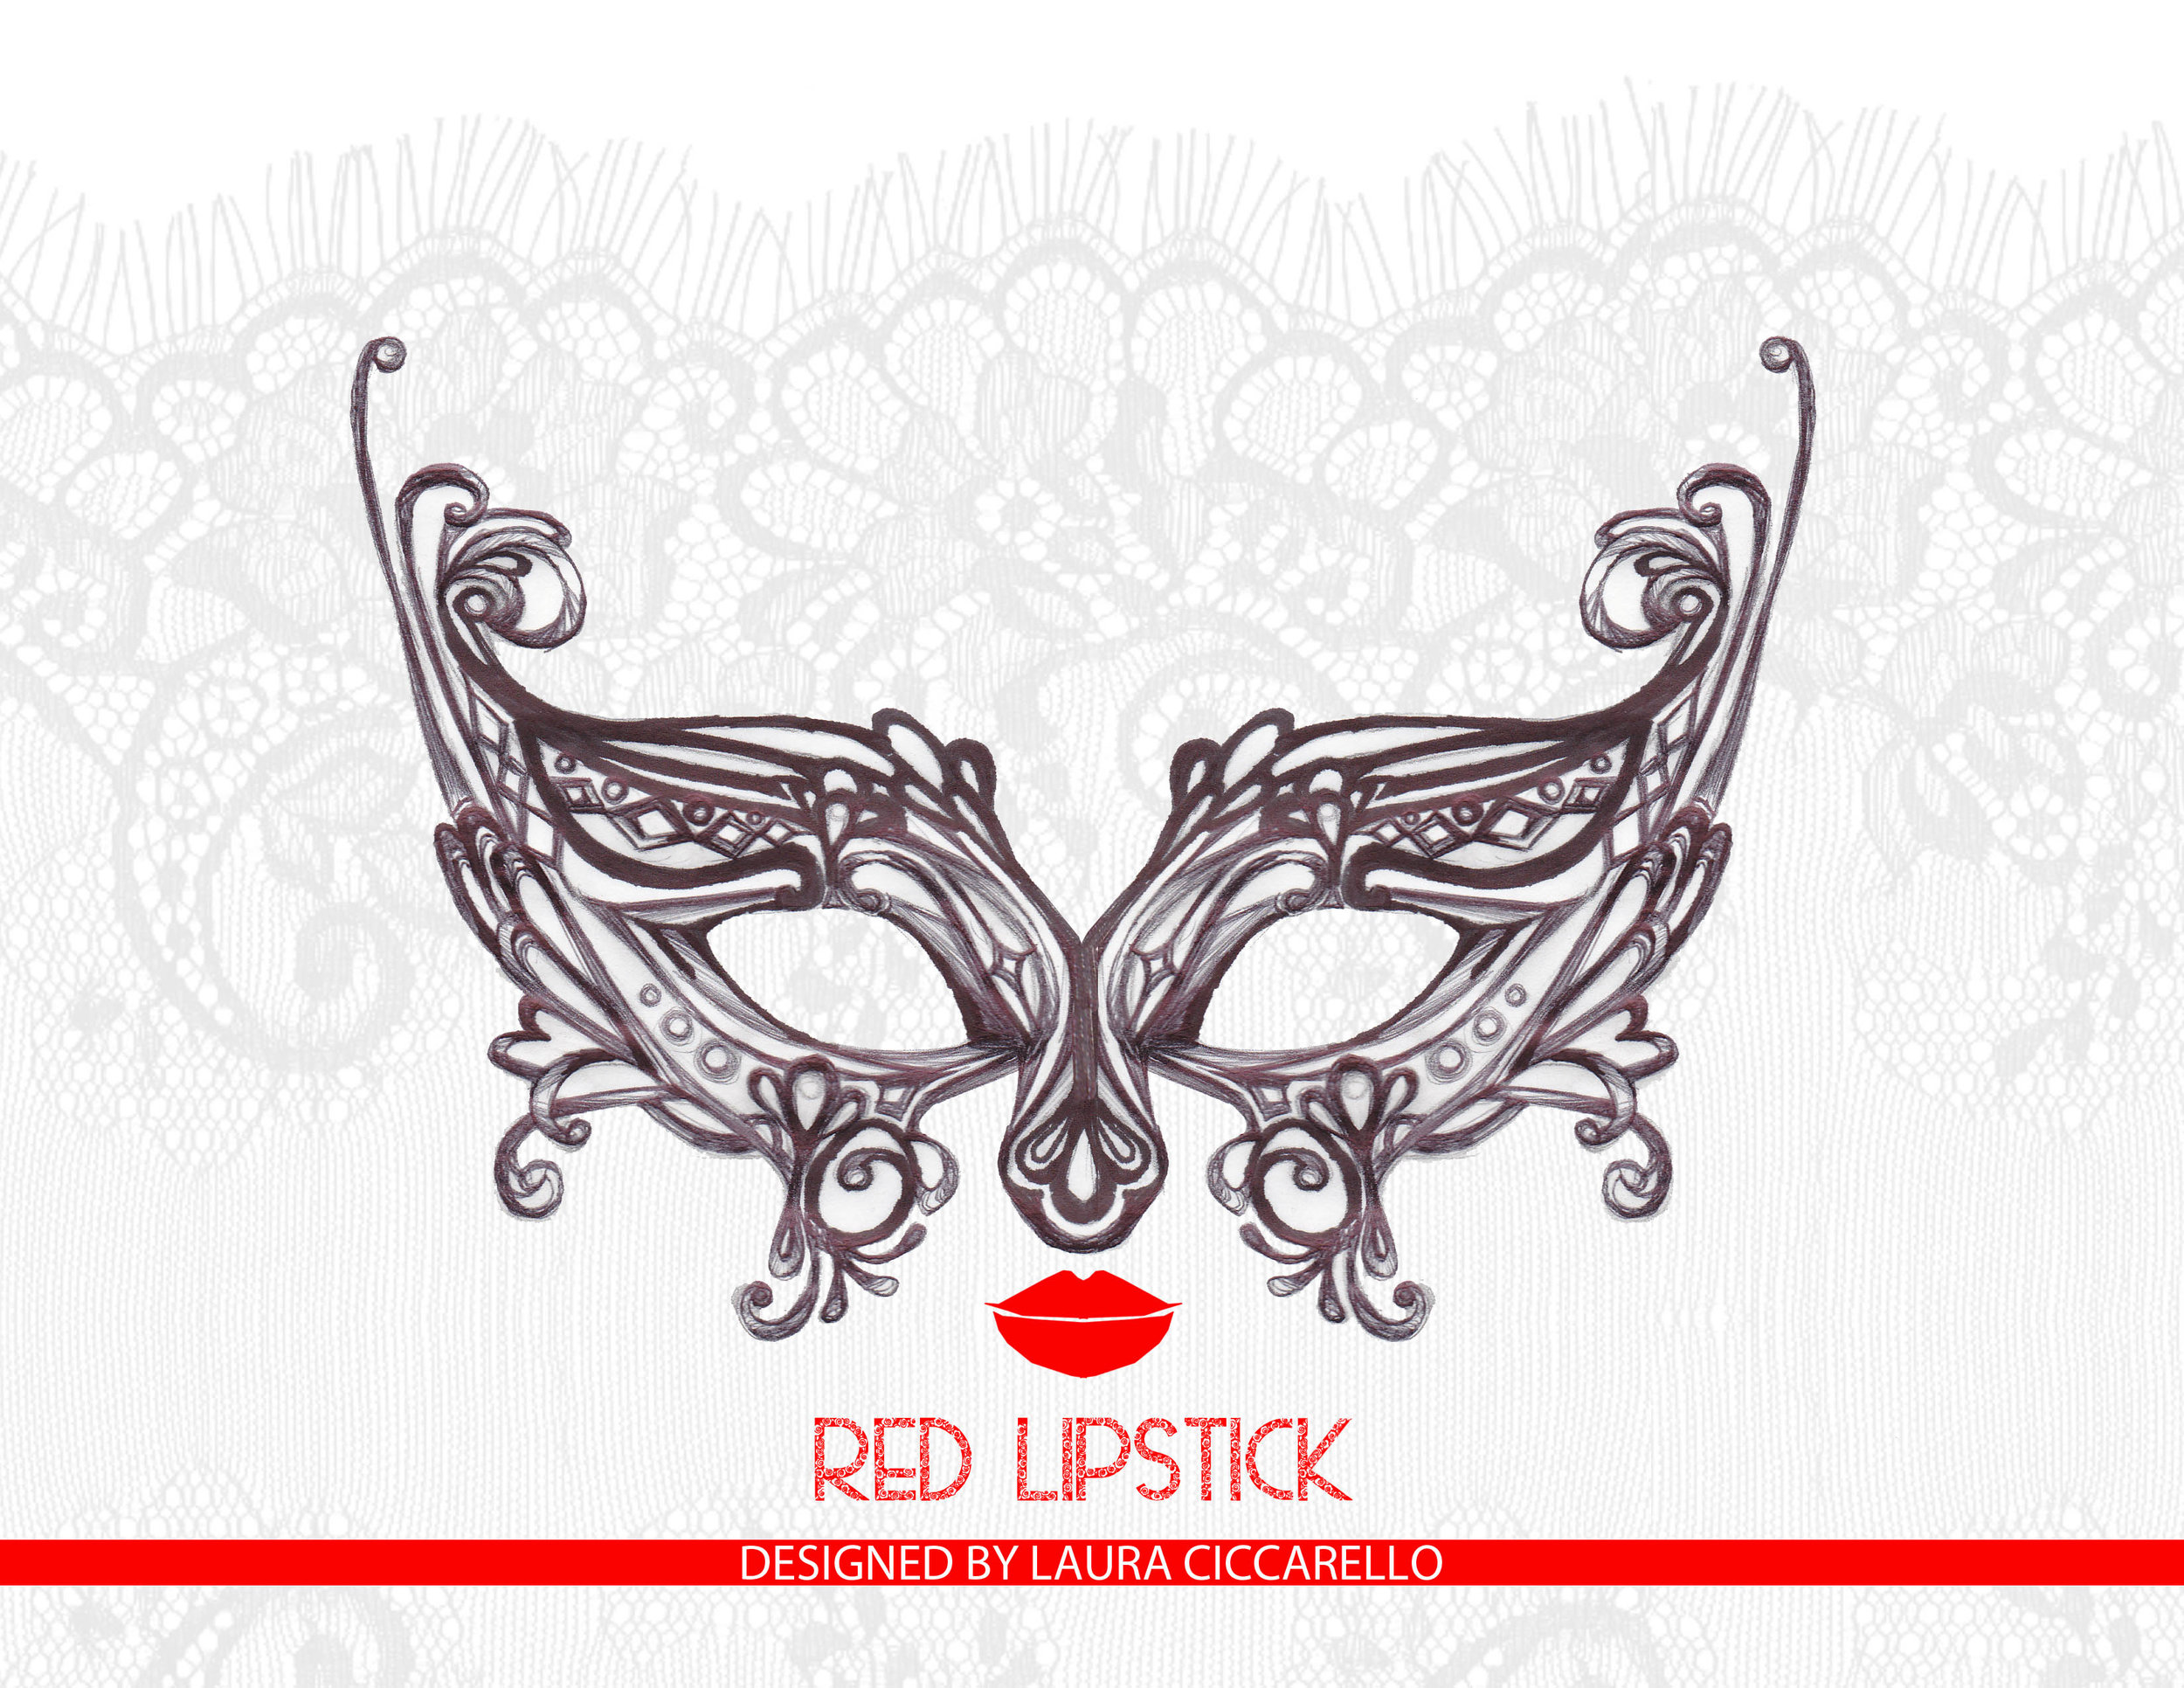 Red Lipstick Collection cover w logo without season label.jpg